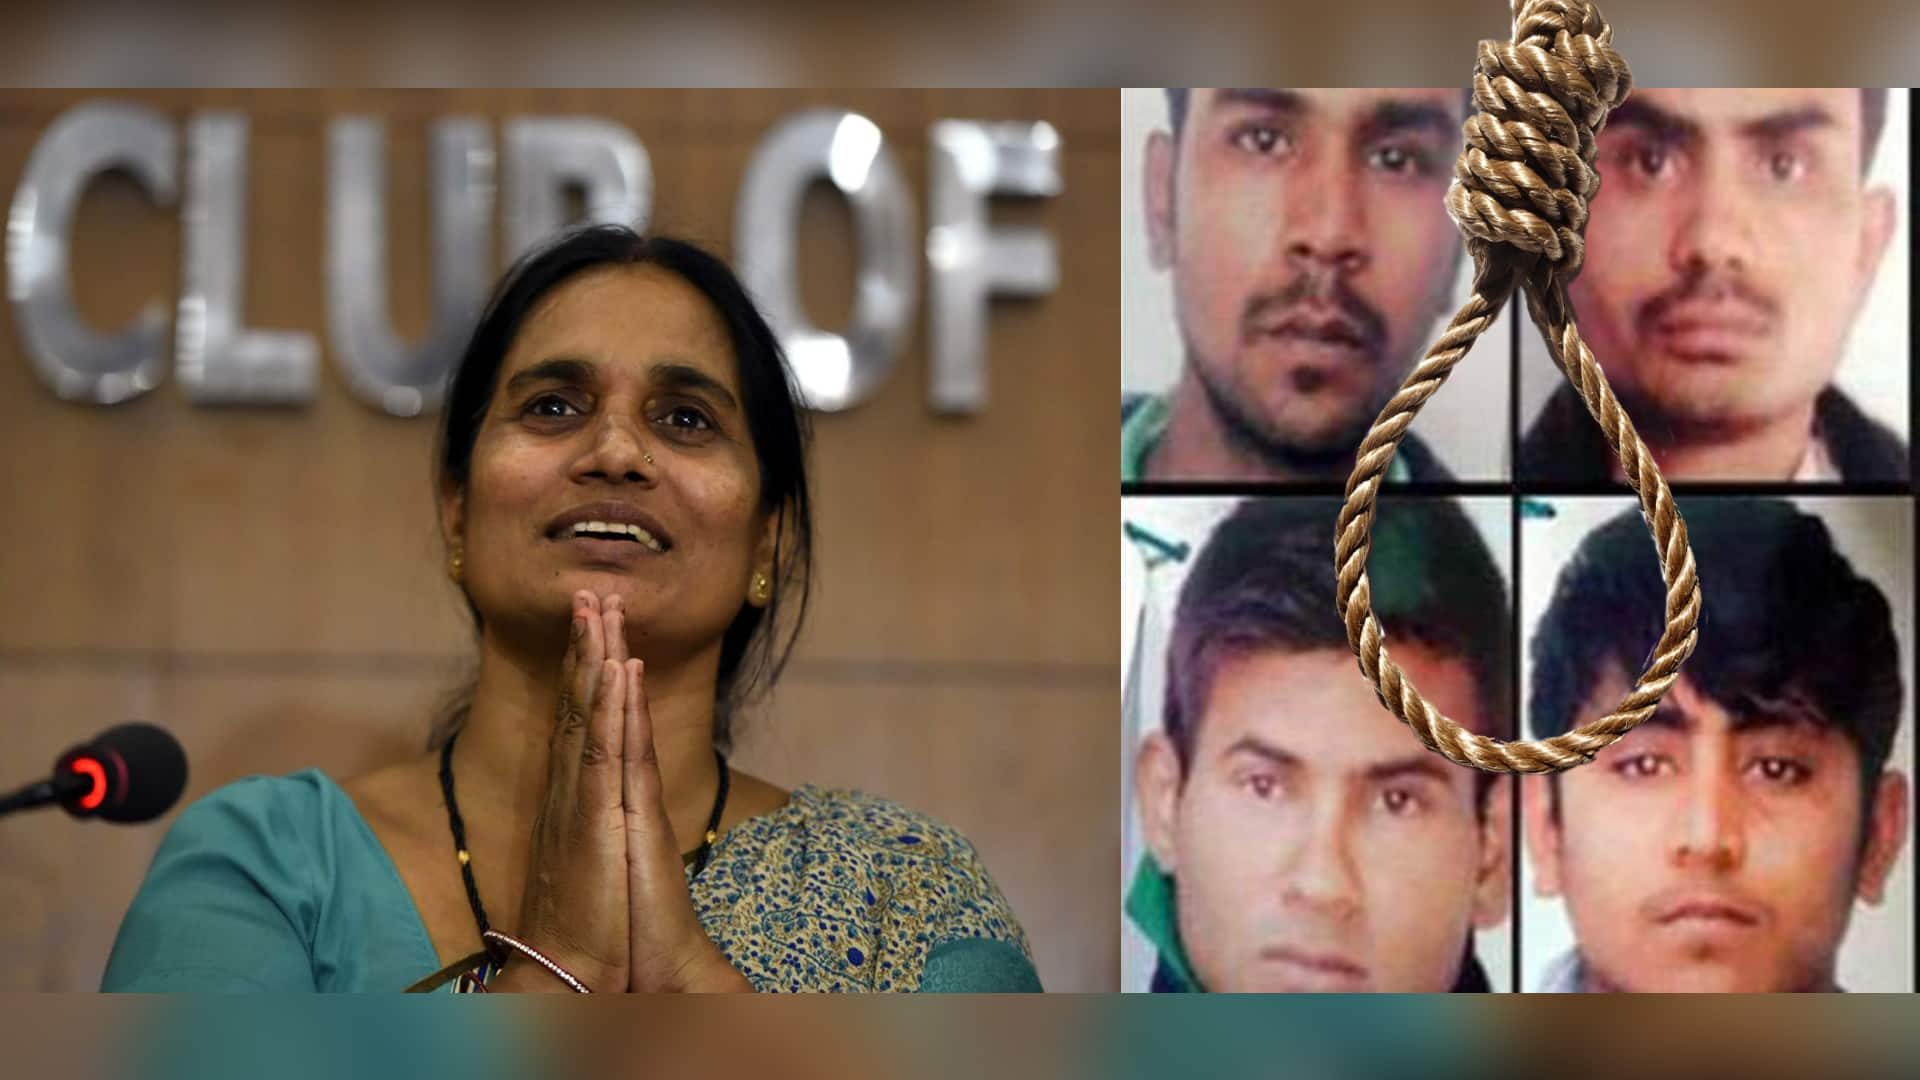 SC rejects review petitions of death convicts in Nirbhaya case